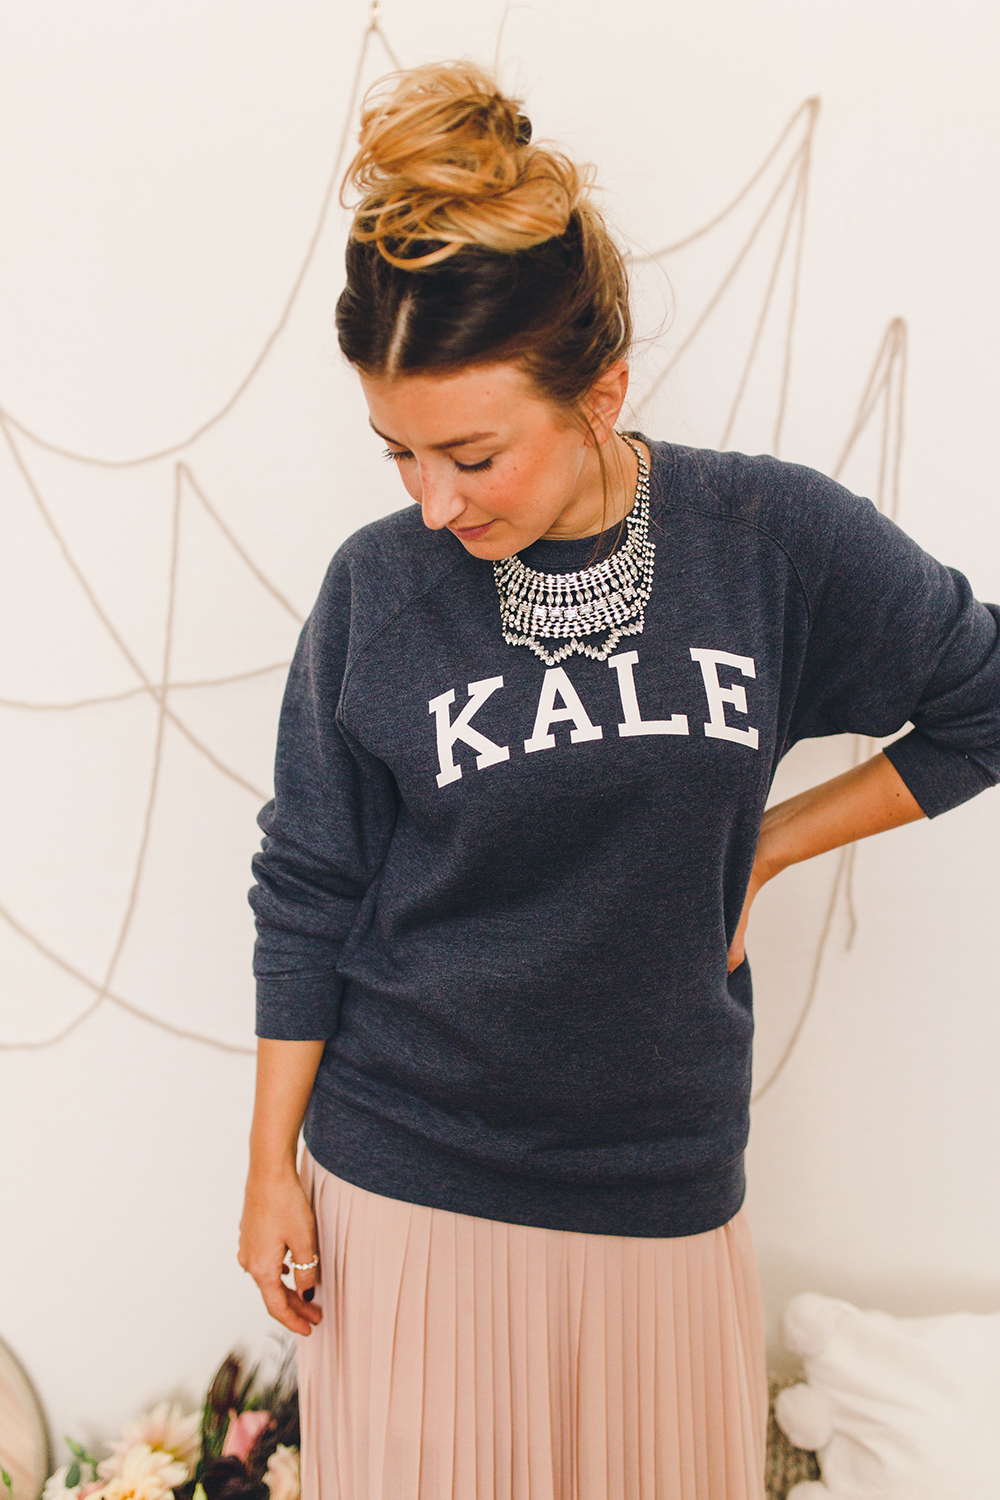 How to wear a sweatshirt for to your holiday parties | A Fabulous Fete